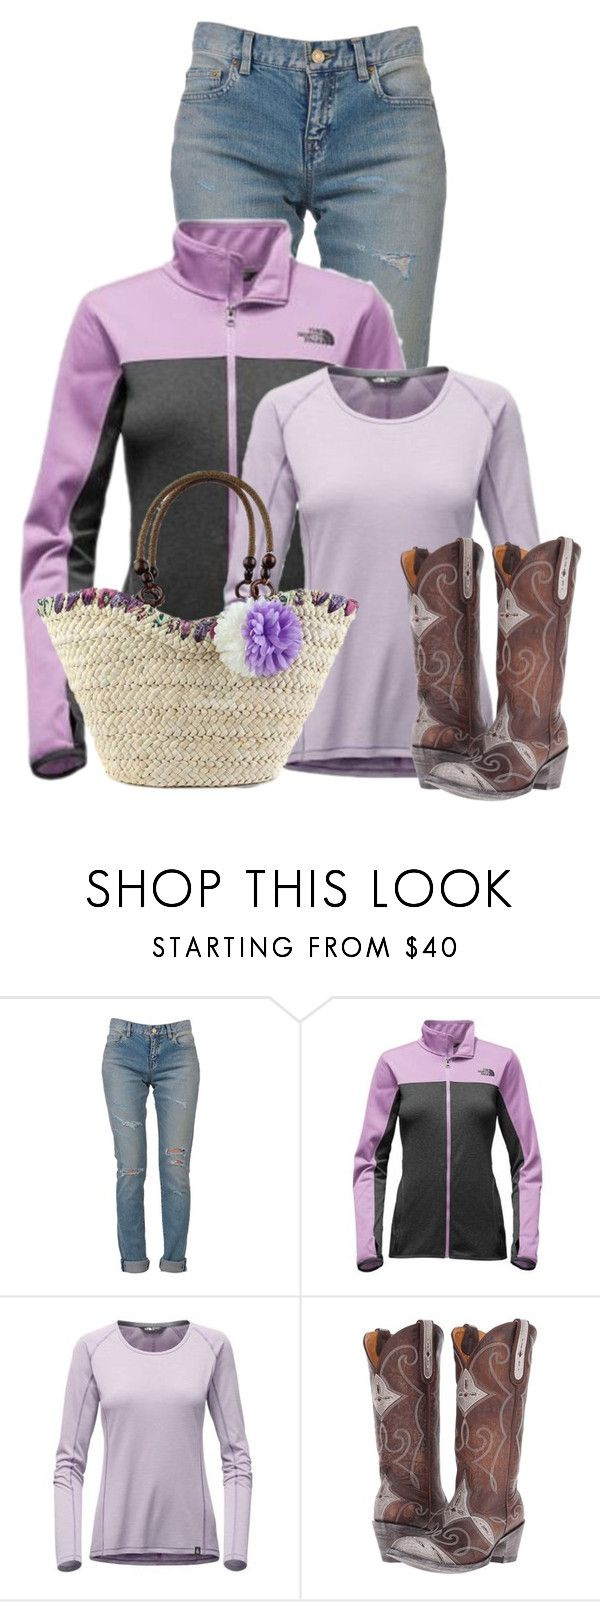 """Untitled #18025"" by nanette-253 ❤ liked on Polyvore featuring Yves Saint Laurent, The North Face and Old Gringo"